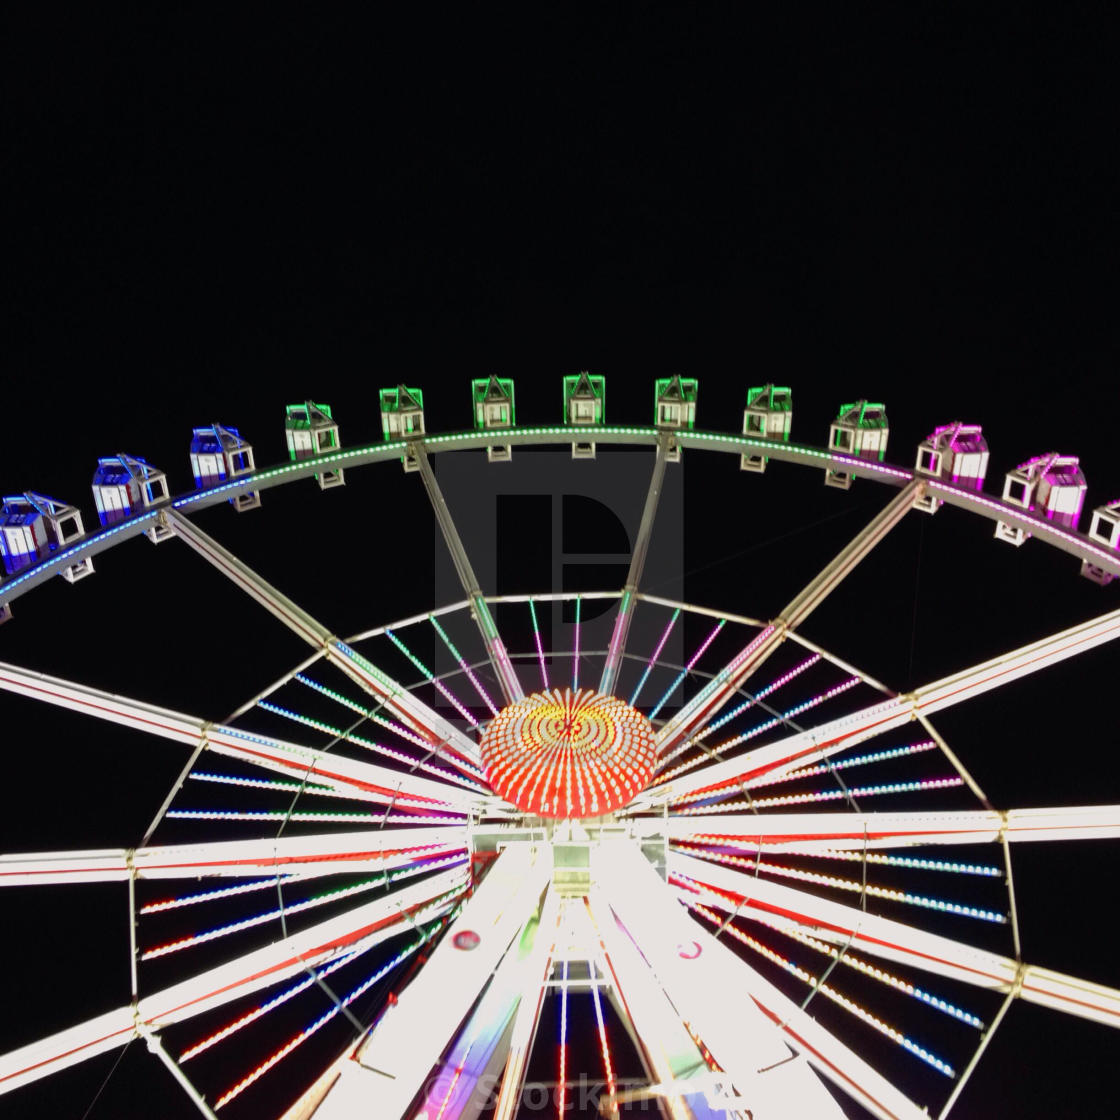 """Ferris wheel at night at Hamburger DOM fun fair, Hamburg, Germany"" stock image"